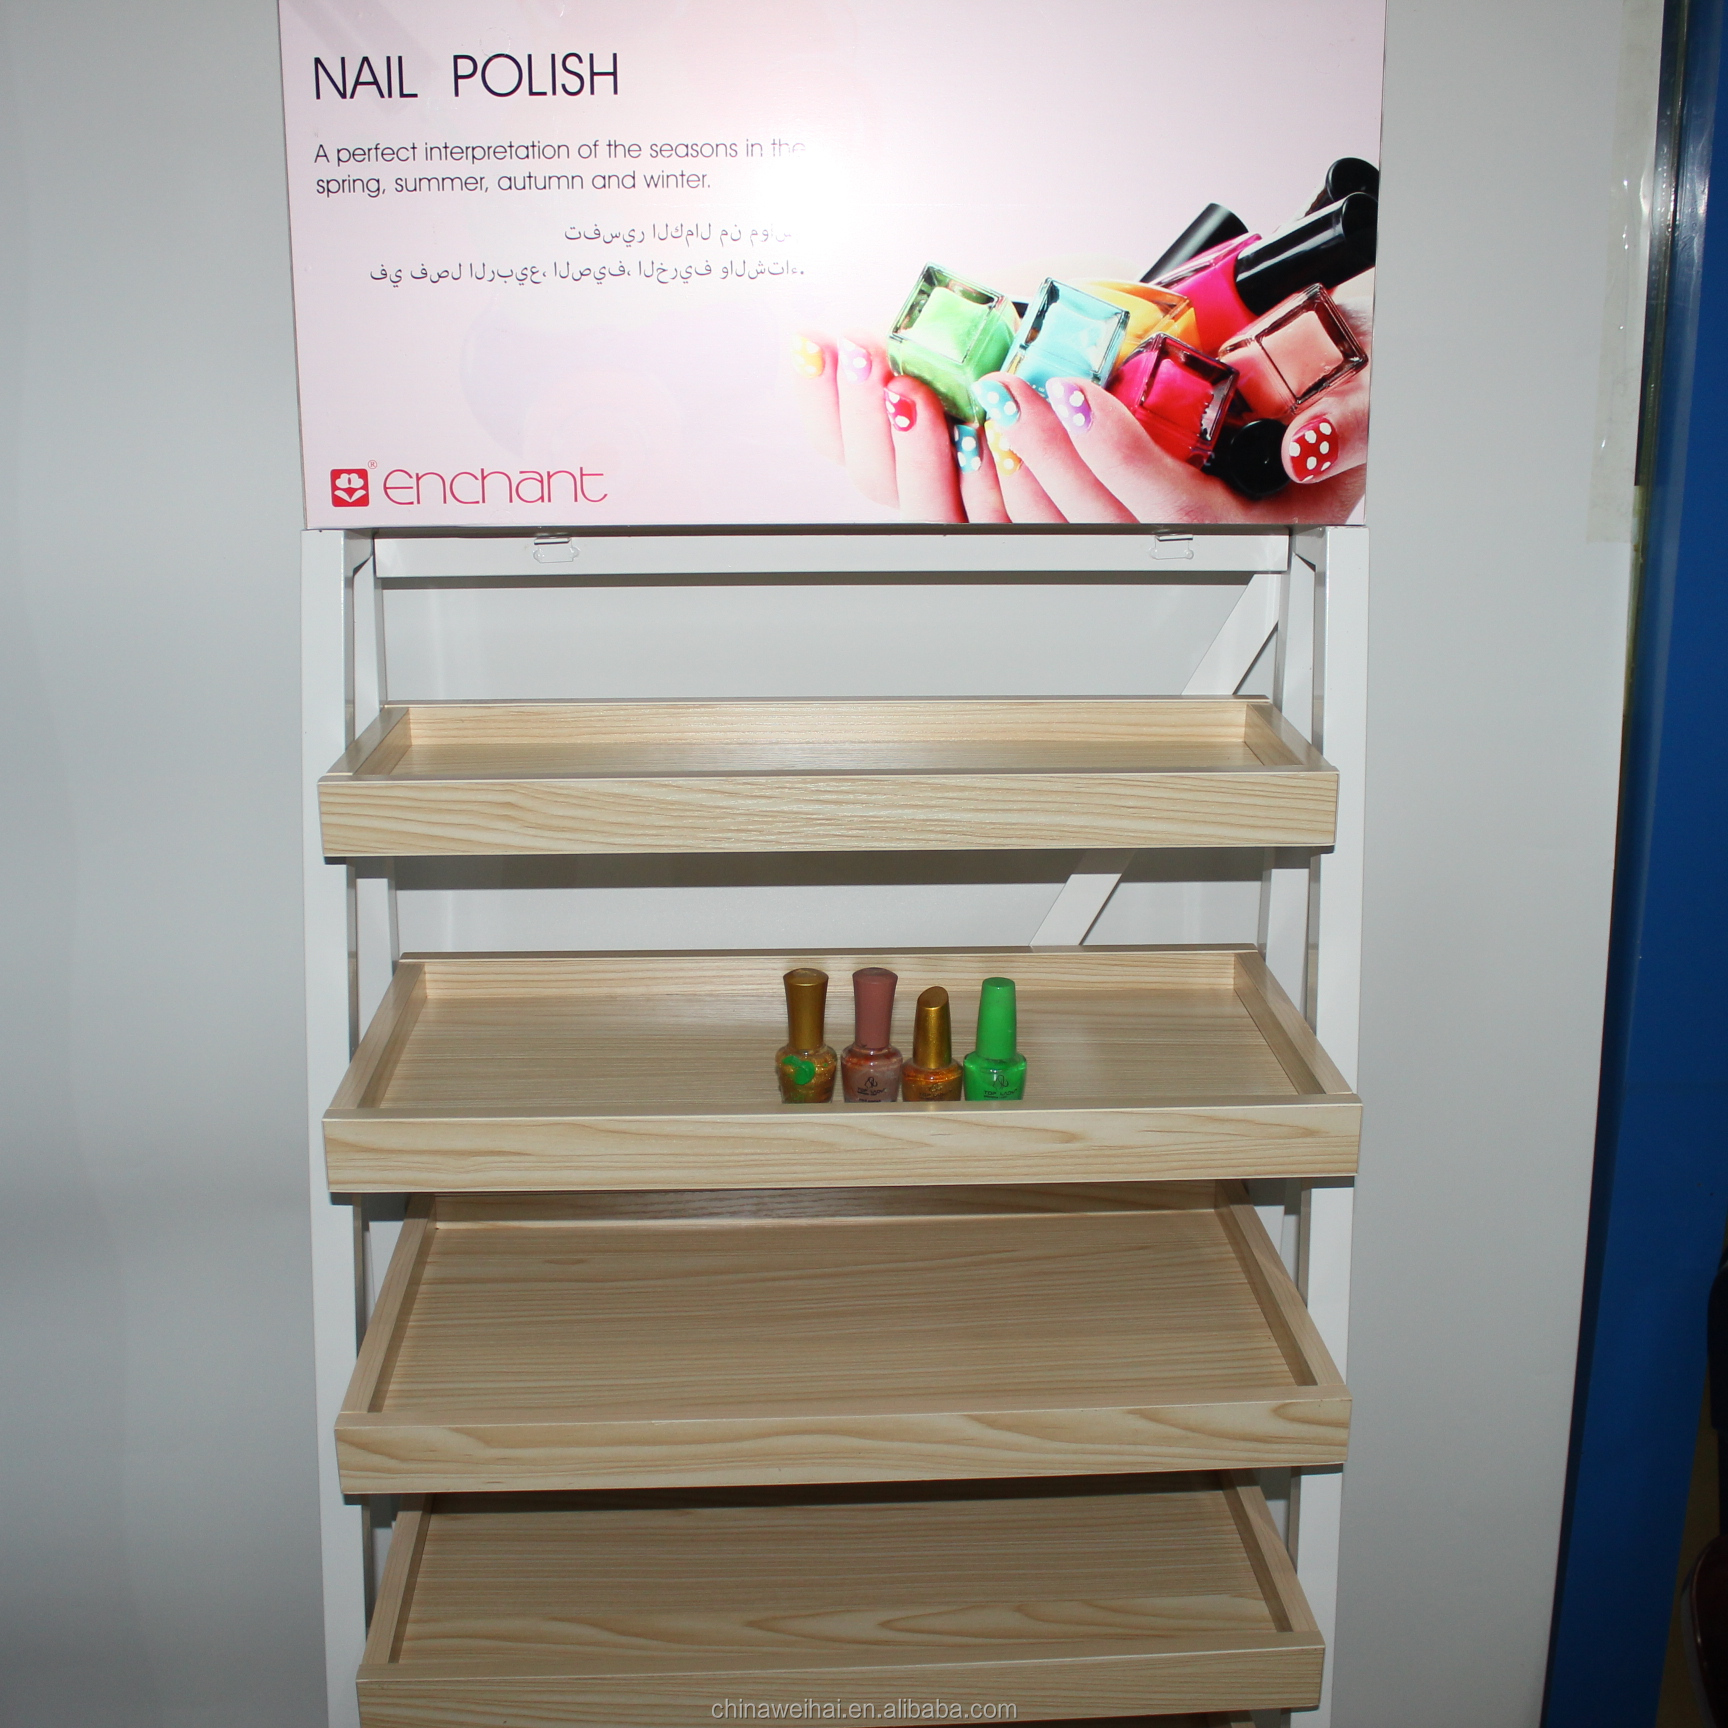 New Design Nail Polish Metal Display Shelf and Floor Stand